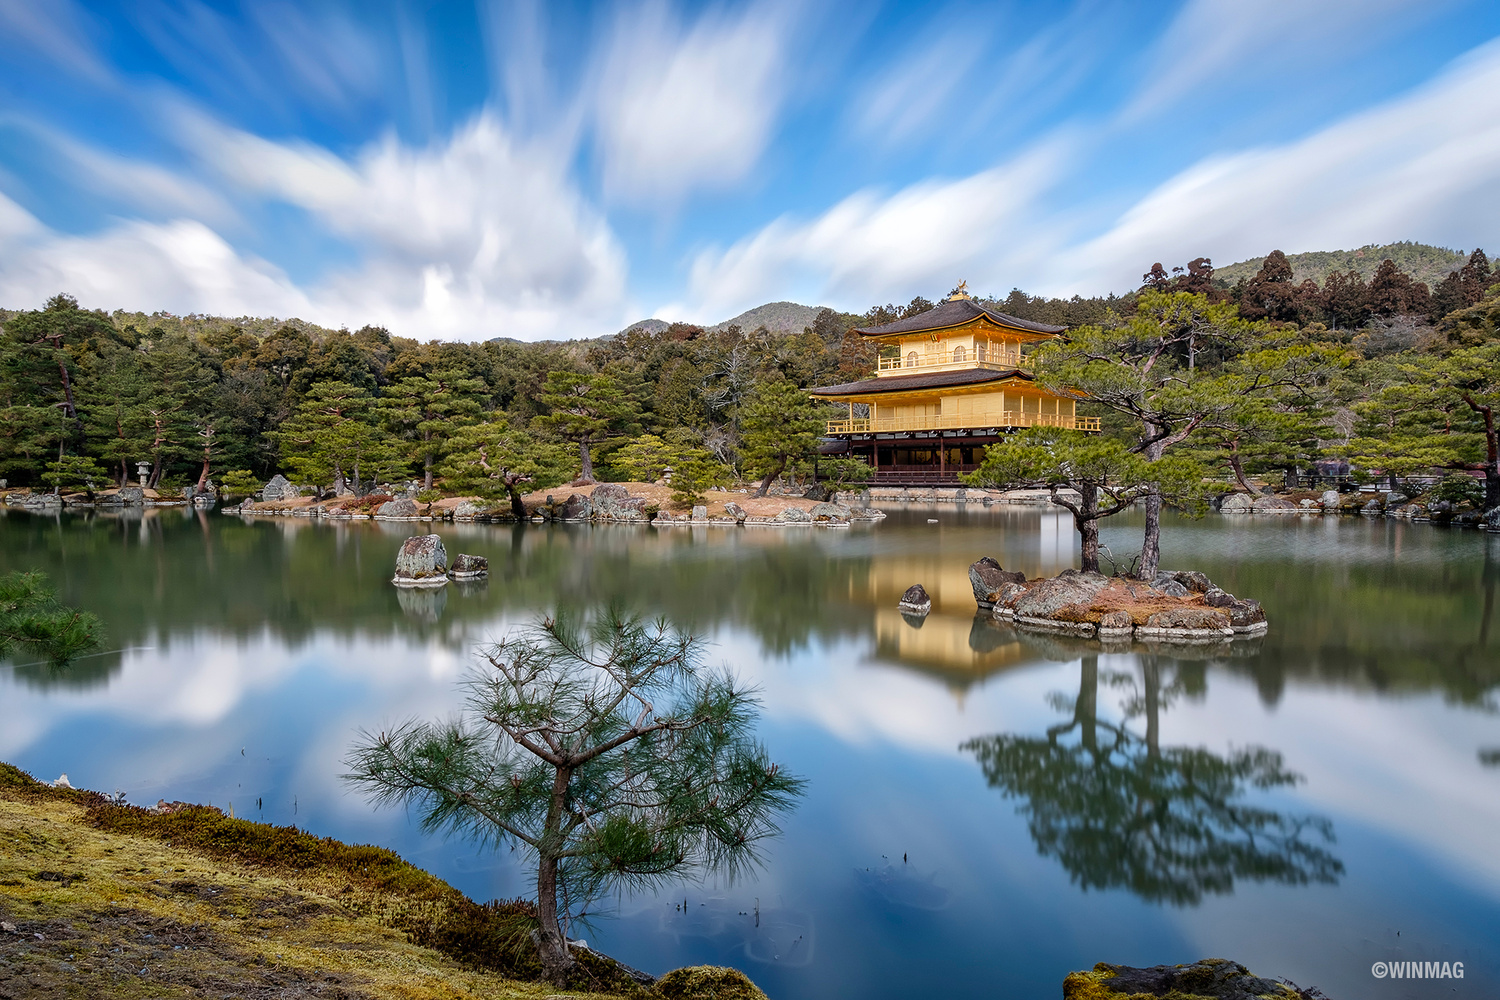 The Golden Pavilion by Win Mag